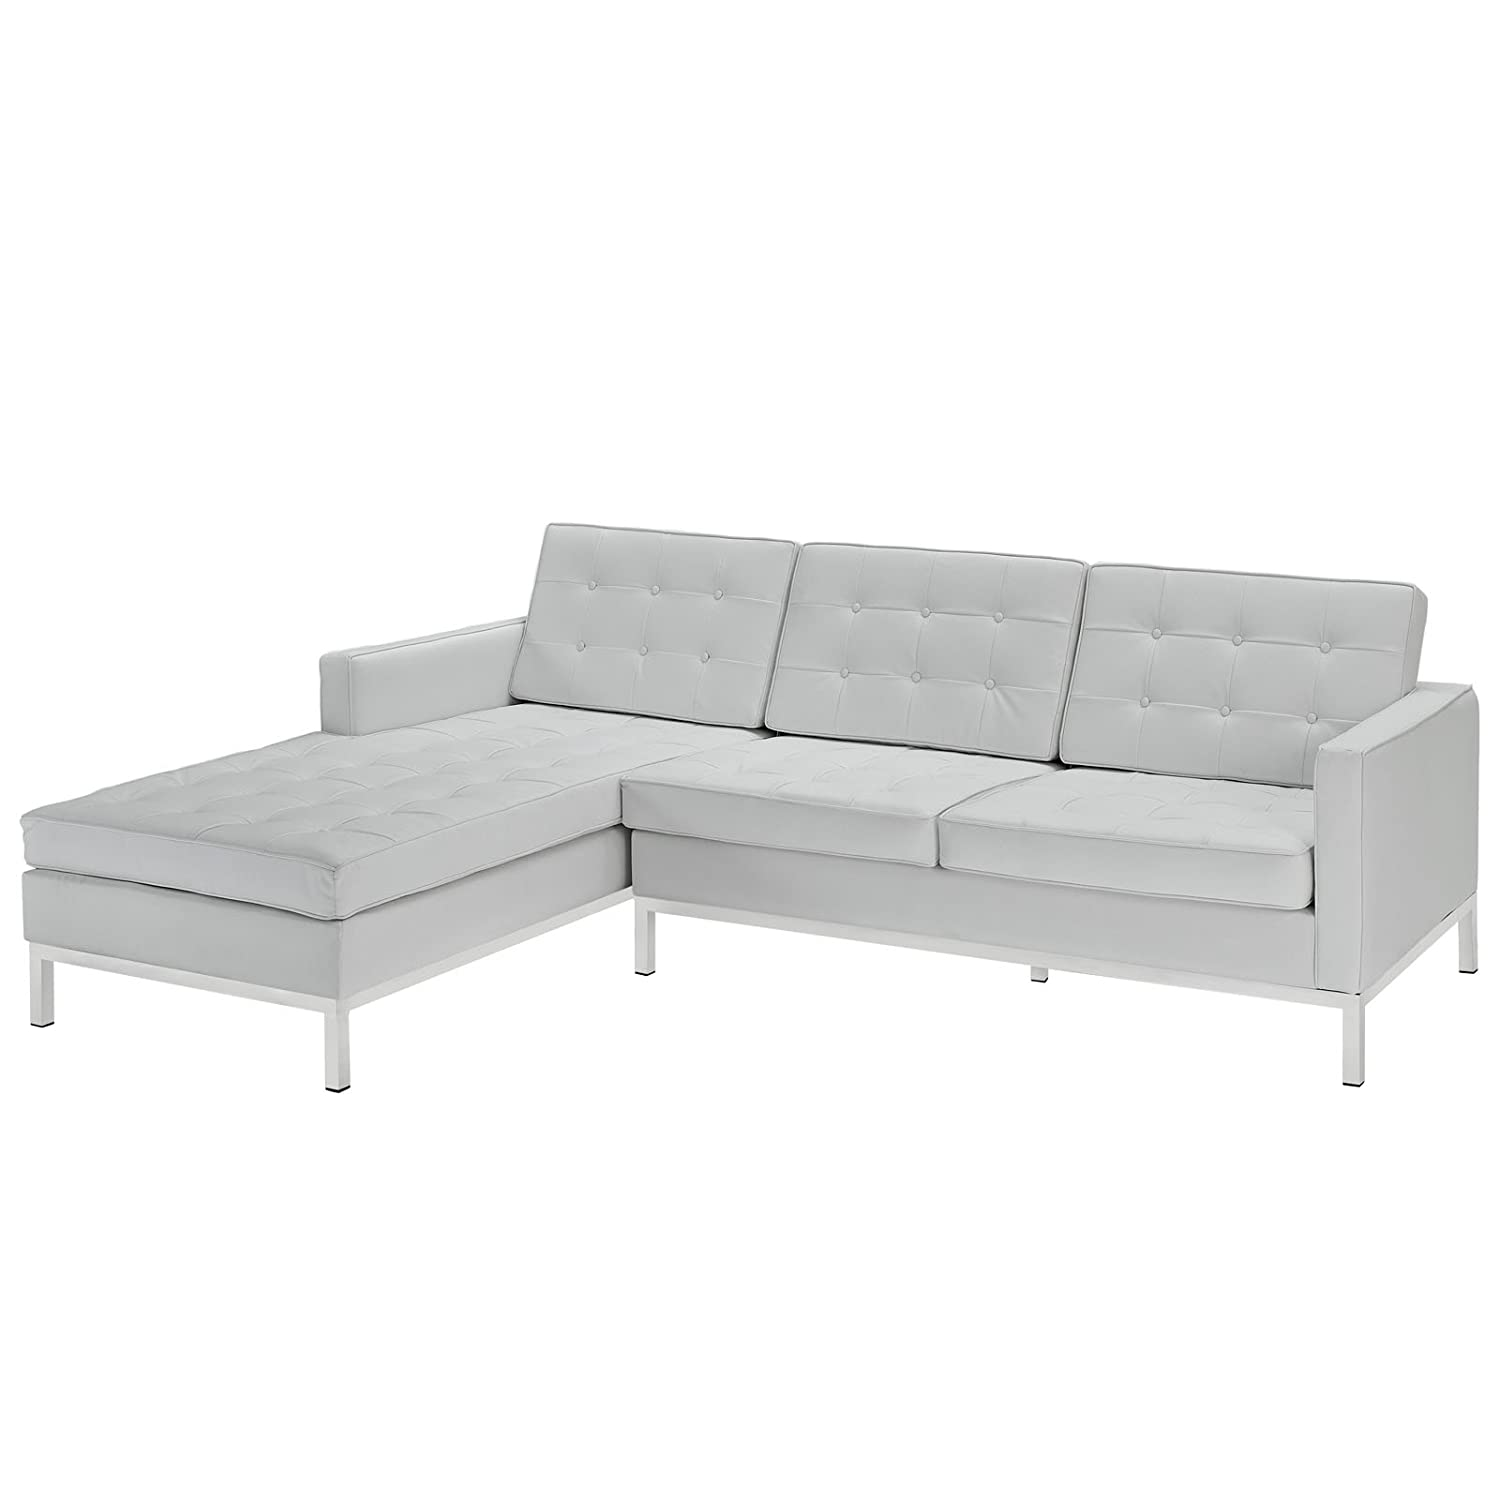 Urban Contemporary Tufted White Leather Sectional - Left Arm